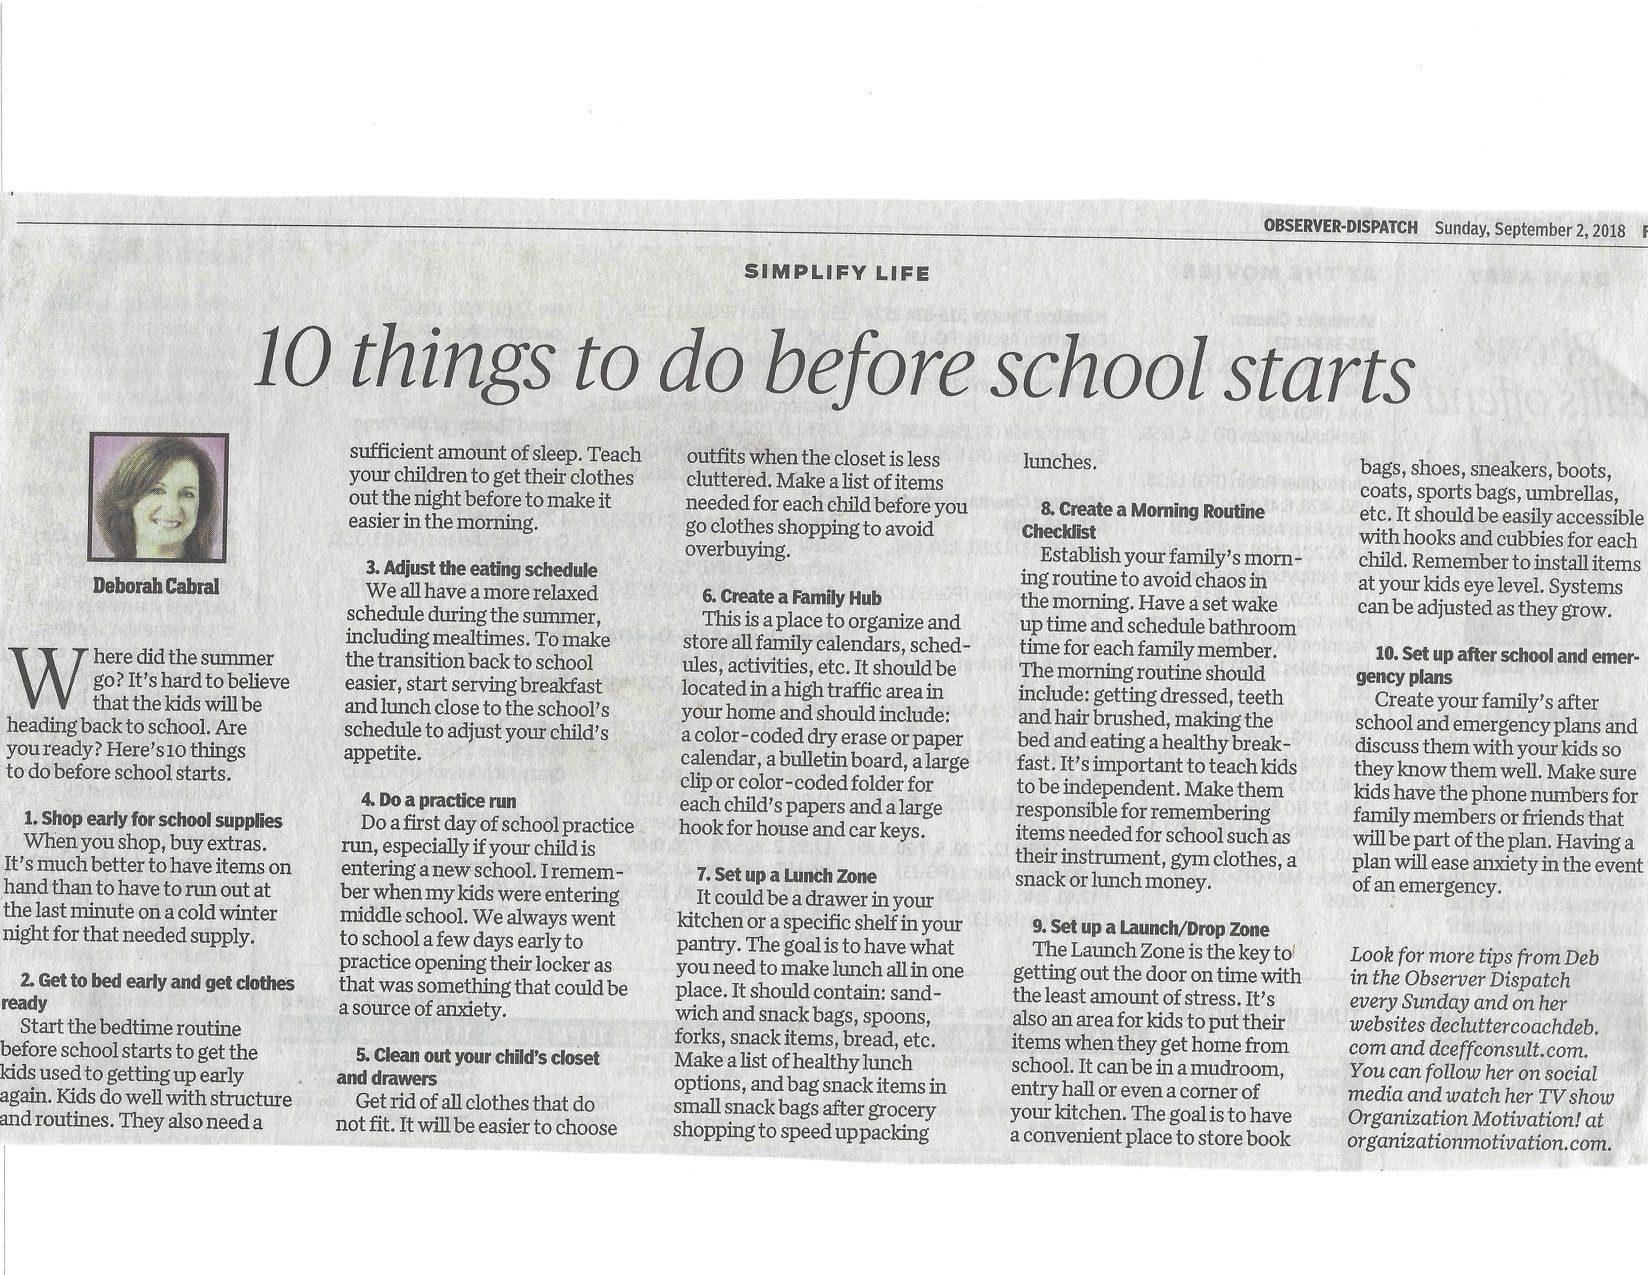 Lit Trois Place Le Luxe Utica Ny Od Column Archives Page 3 Of 21 the Declutter Coach